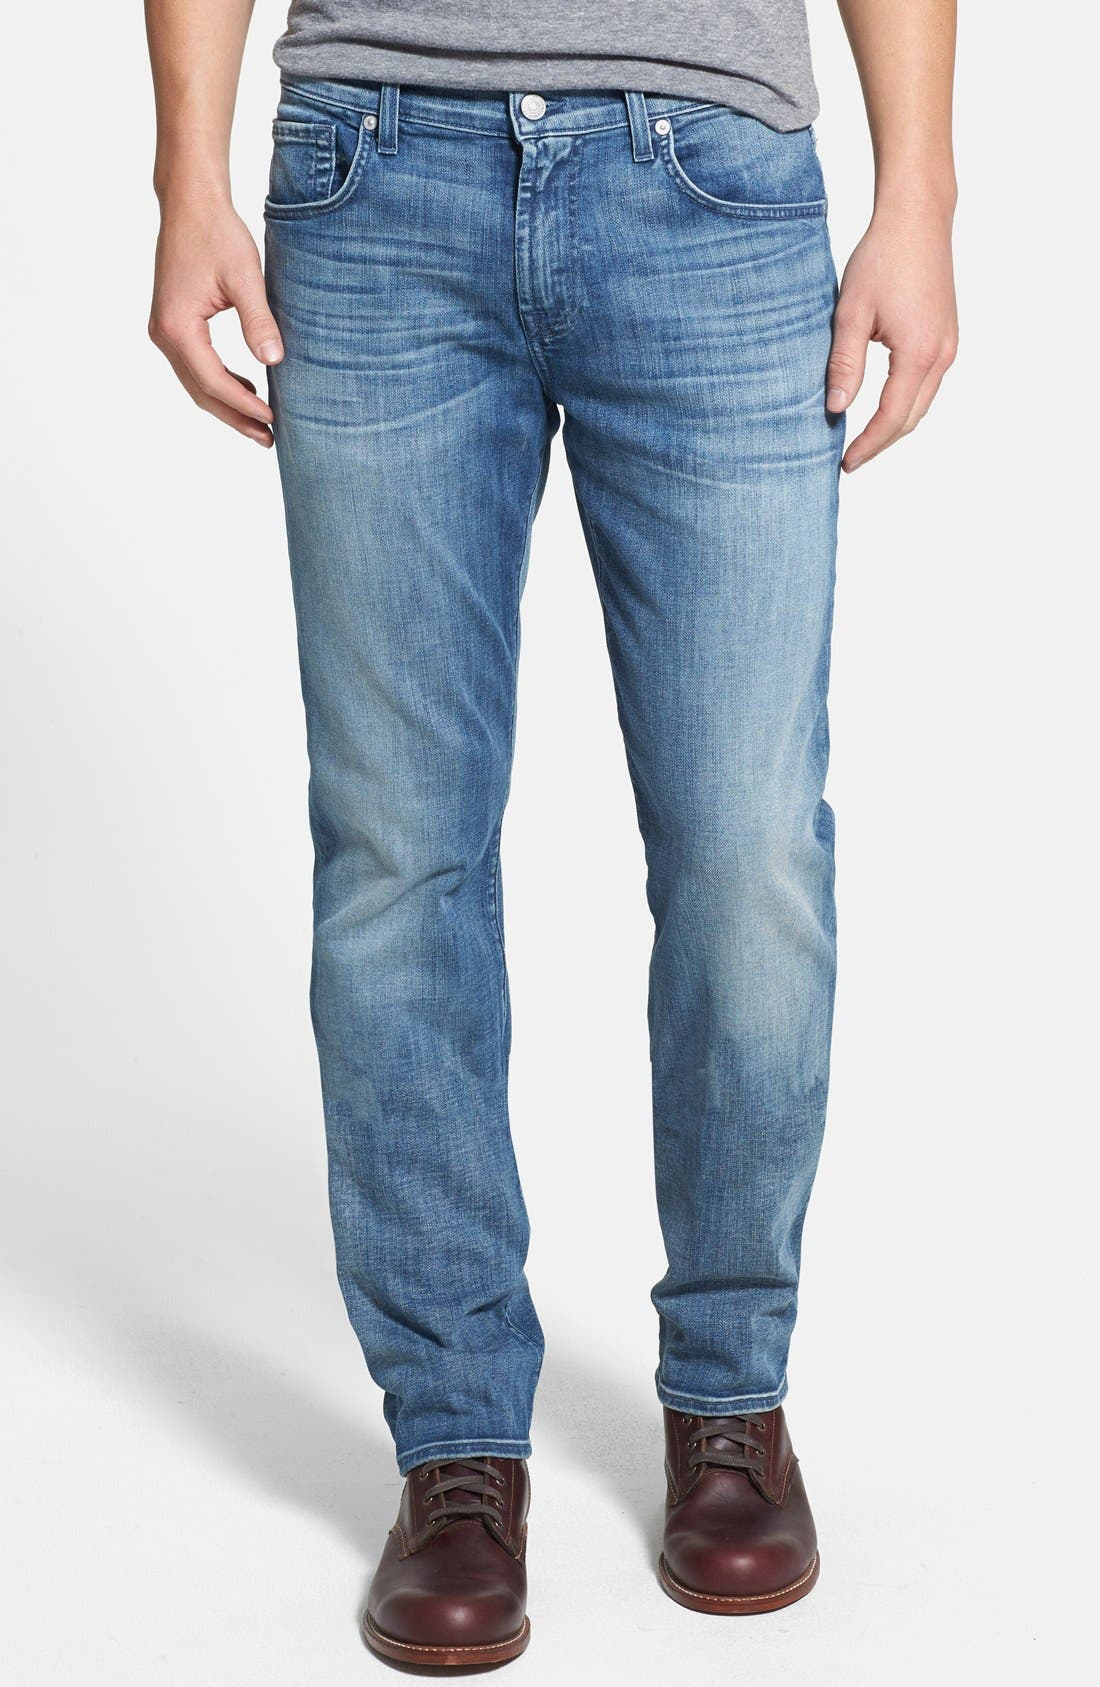 Alternate Image 1 Selected - 7 For All Mankind® 'The Straight - Luxe Performance' Tapered Straight Leg Jeans (Capri Breeze)